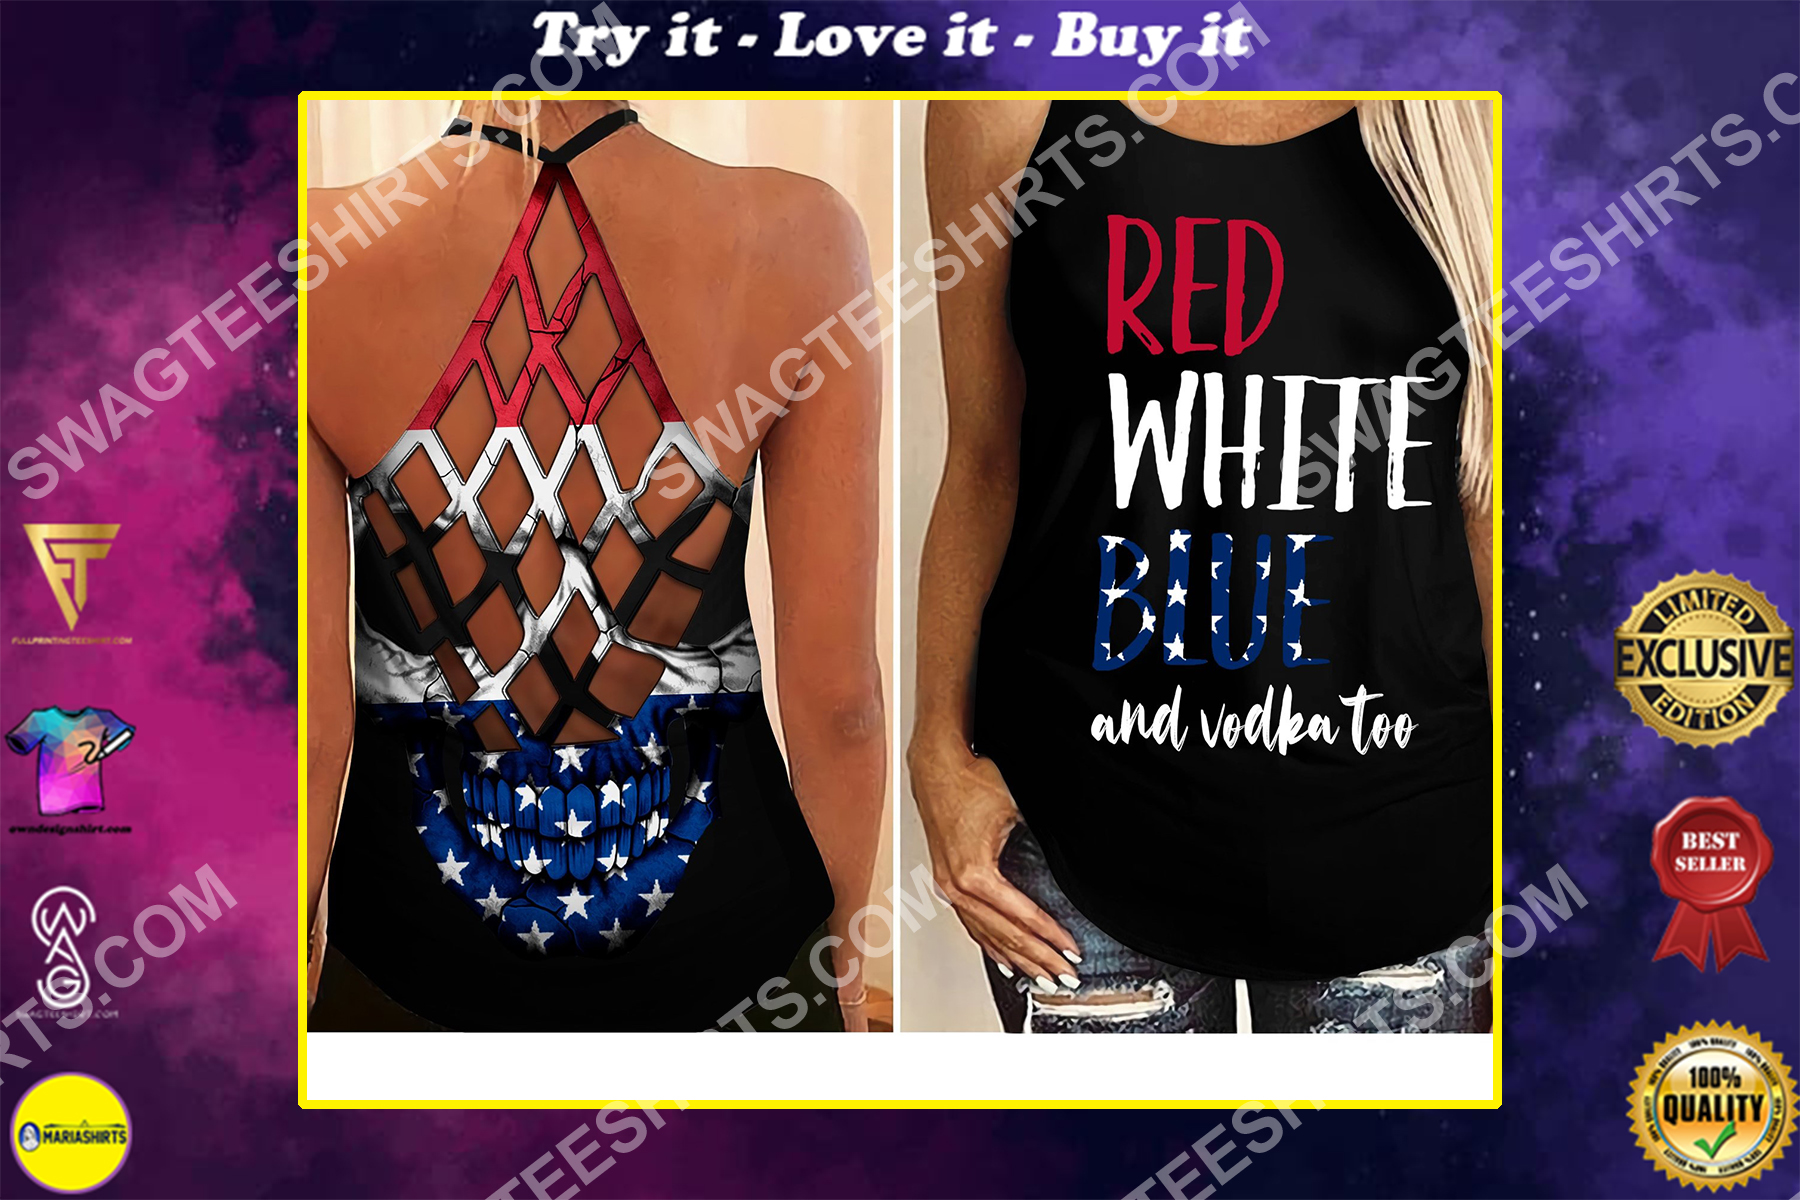 fourth of july red white blue and vodka too all over printed strappy back tank top